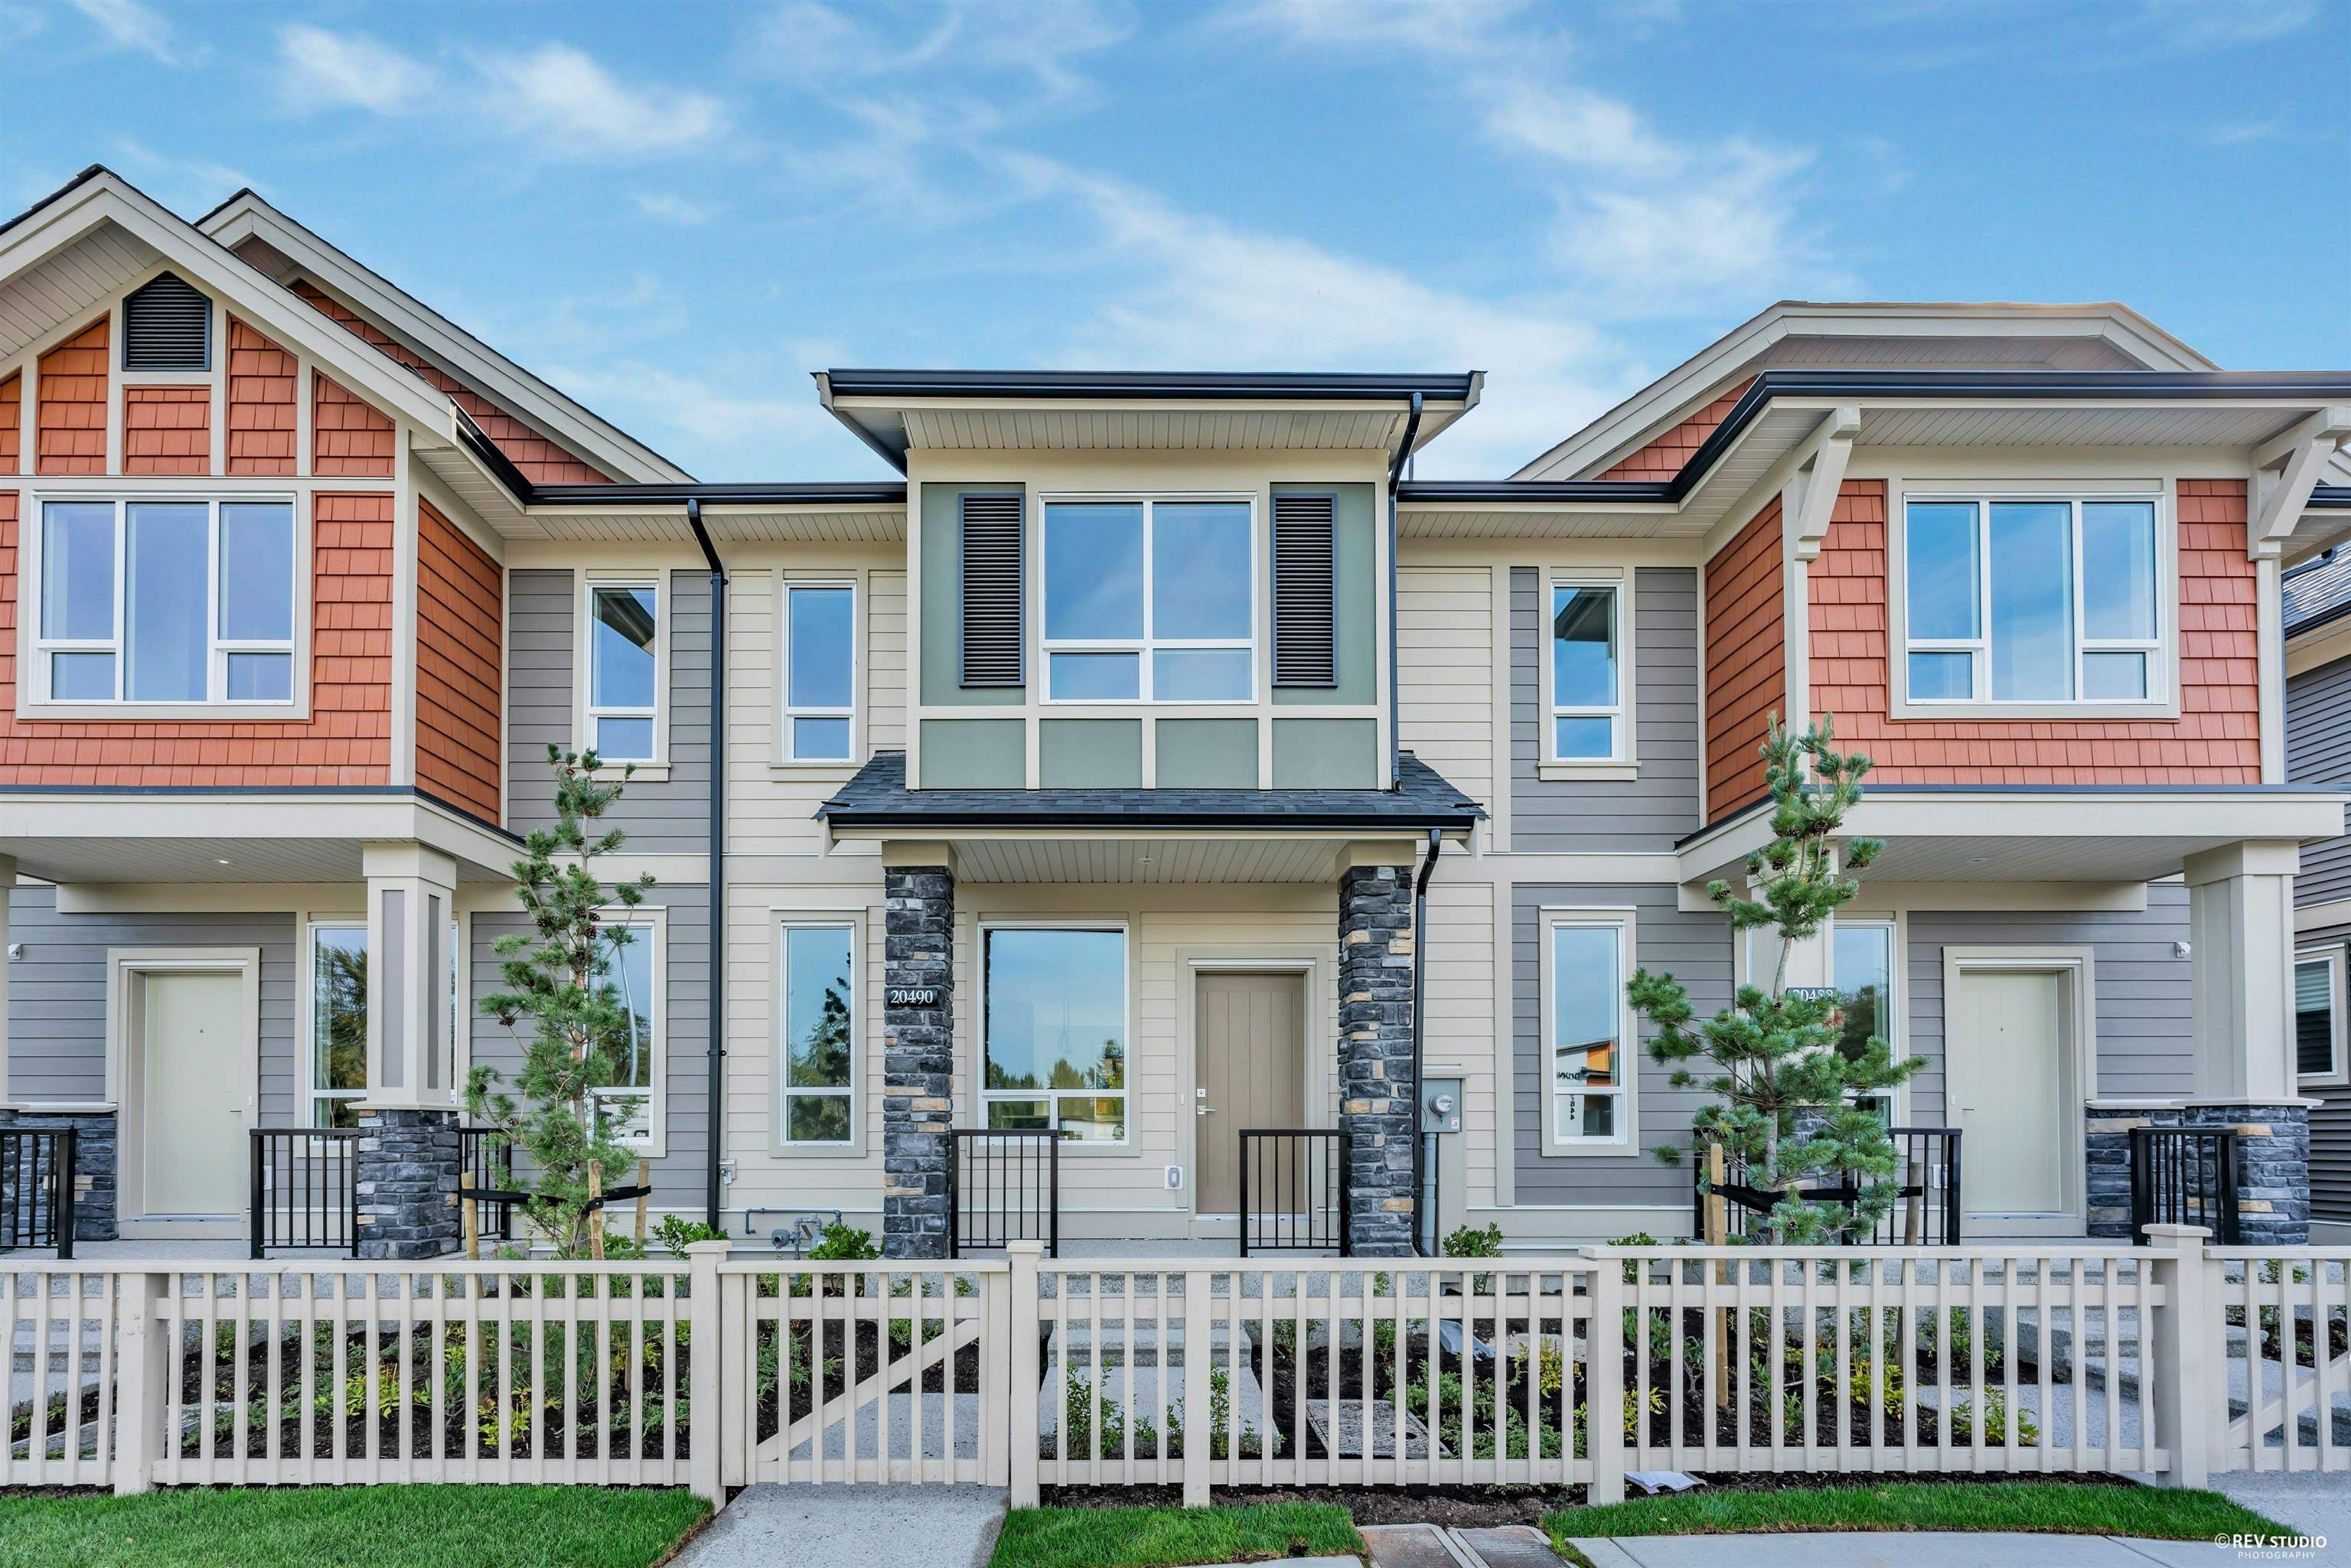 """Main Photo: 20490 78 Avenue in Langley: Willoughby Heights Condo for sale in """"Westbrooke"""" : MLS®# R2621759"""